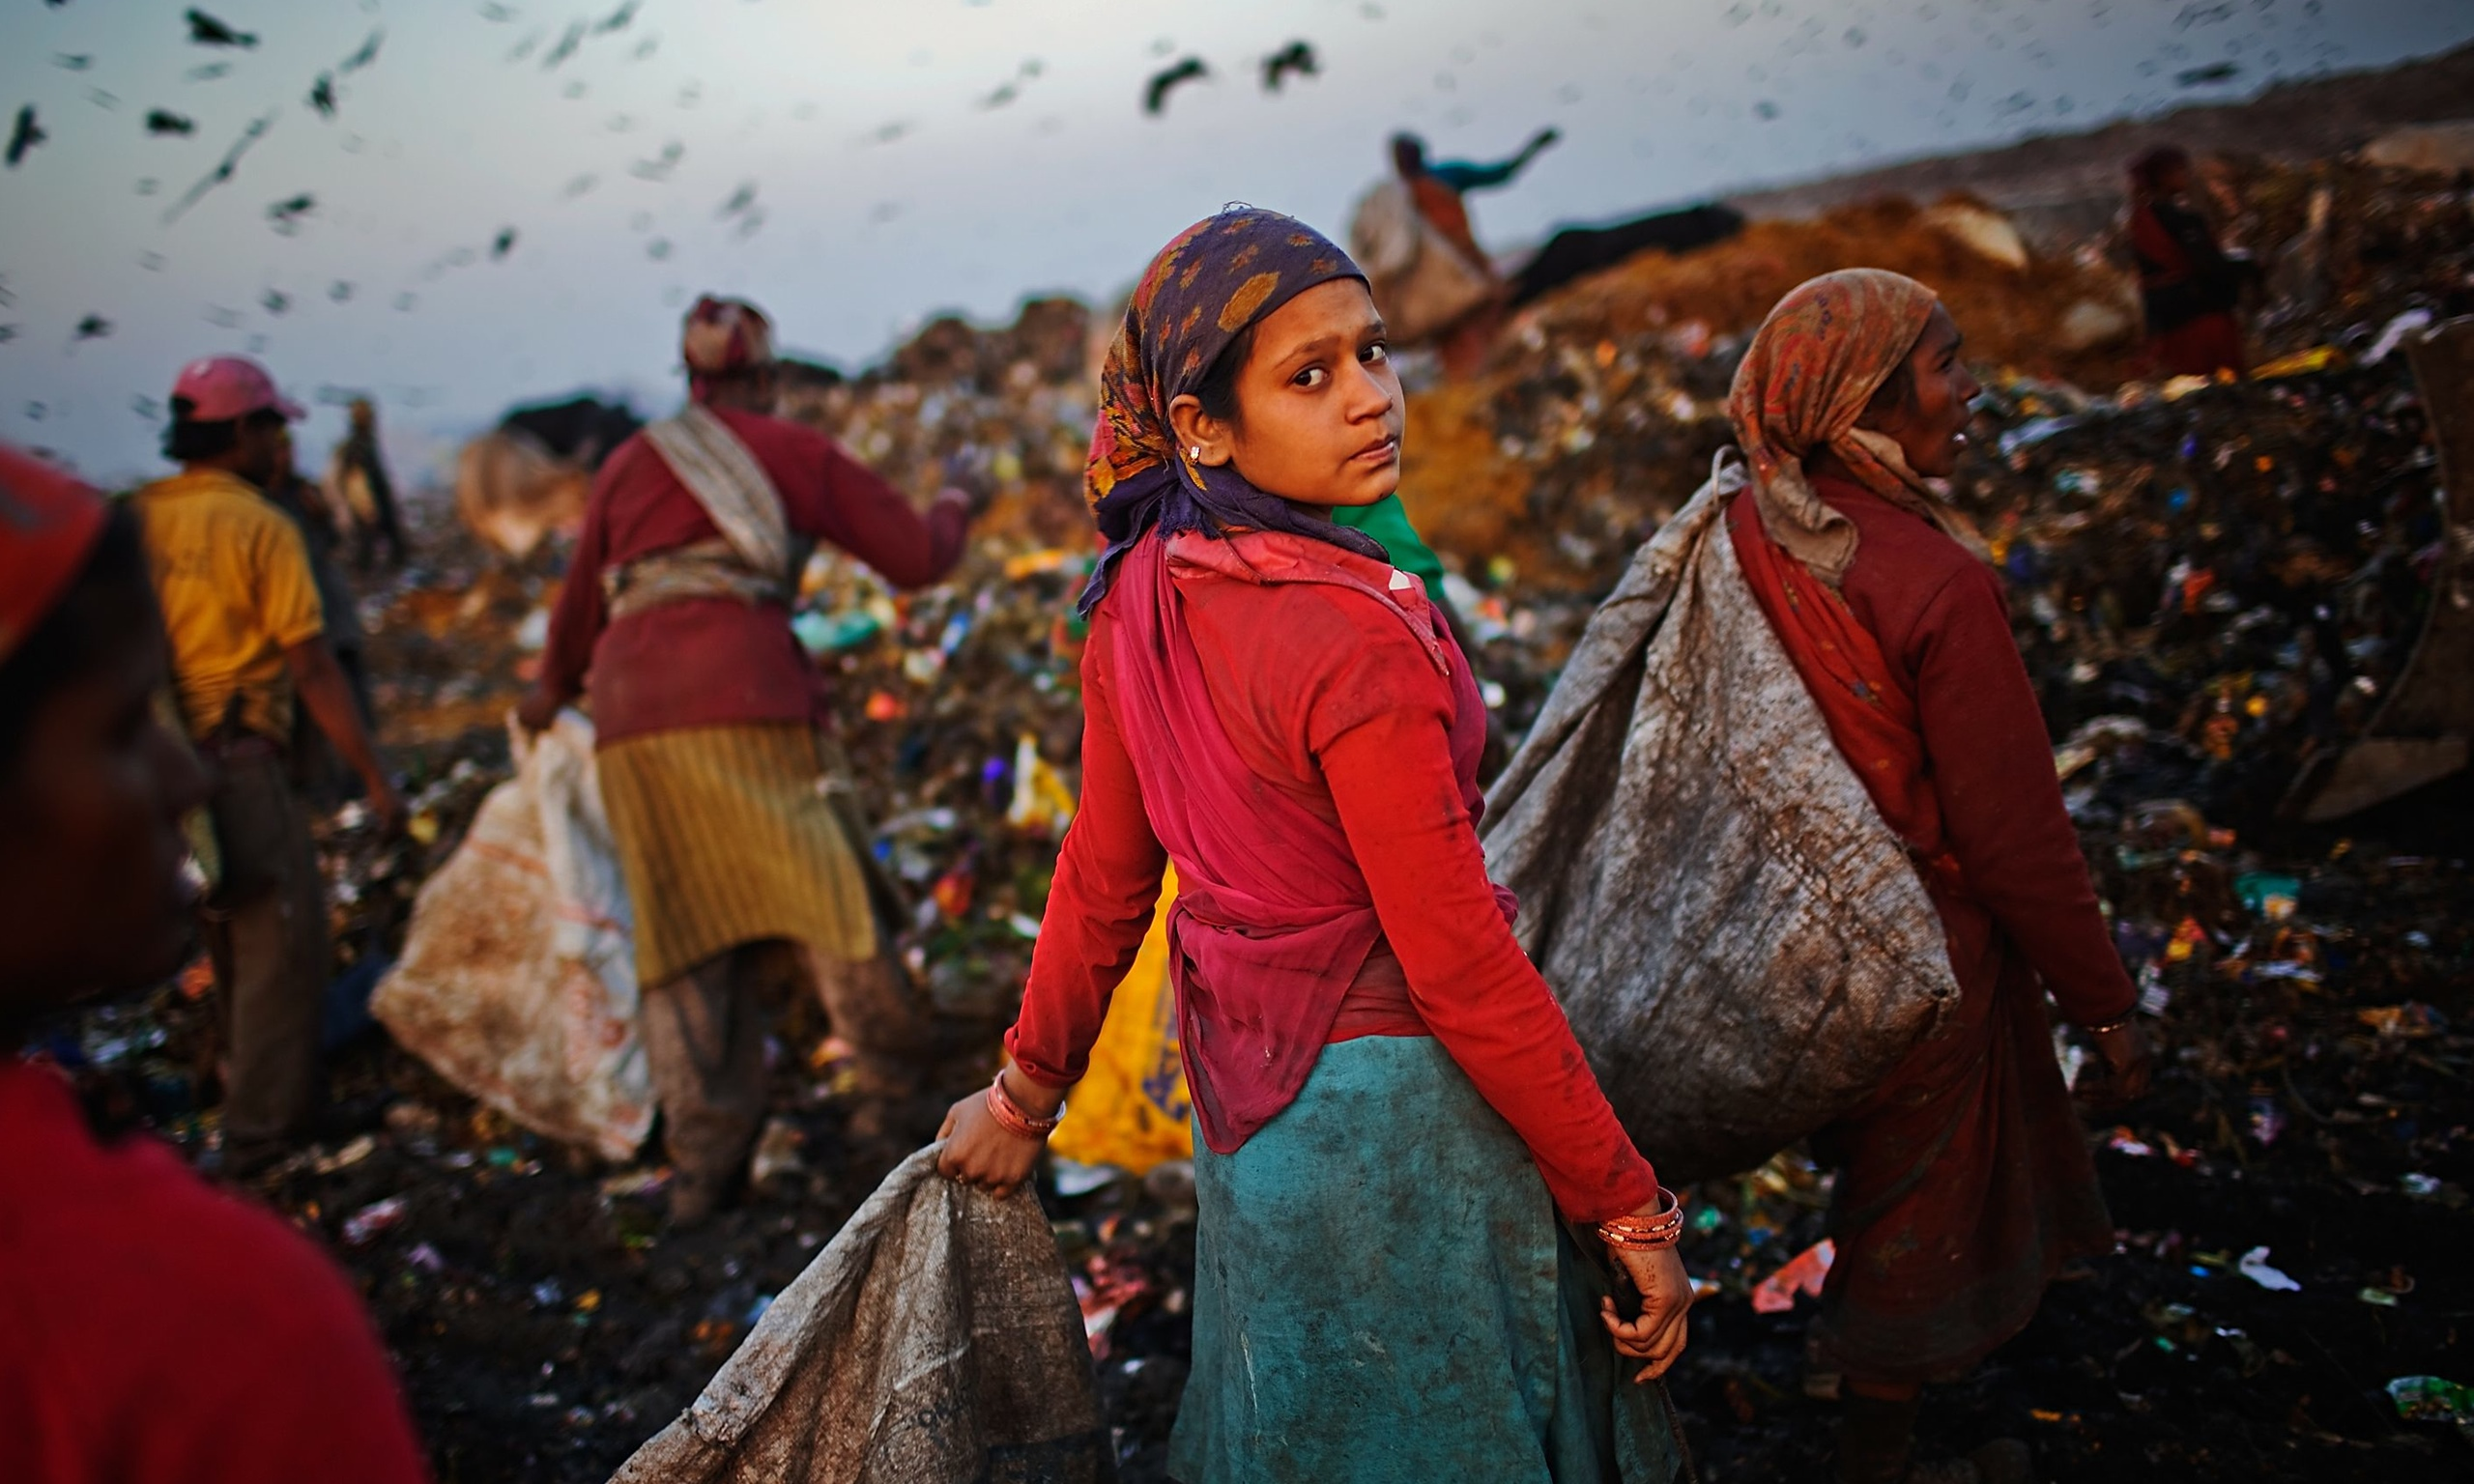 Untouchable to indespensible: the Dalit women revolutionising waste in India